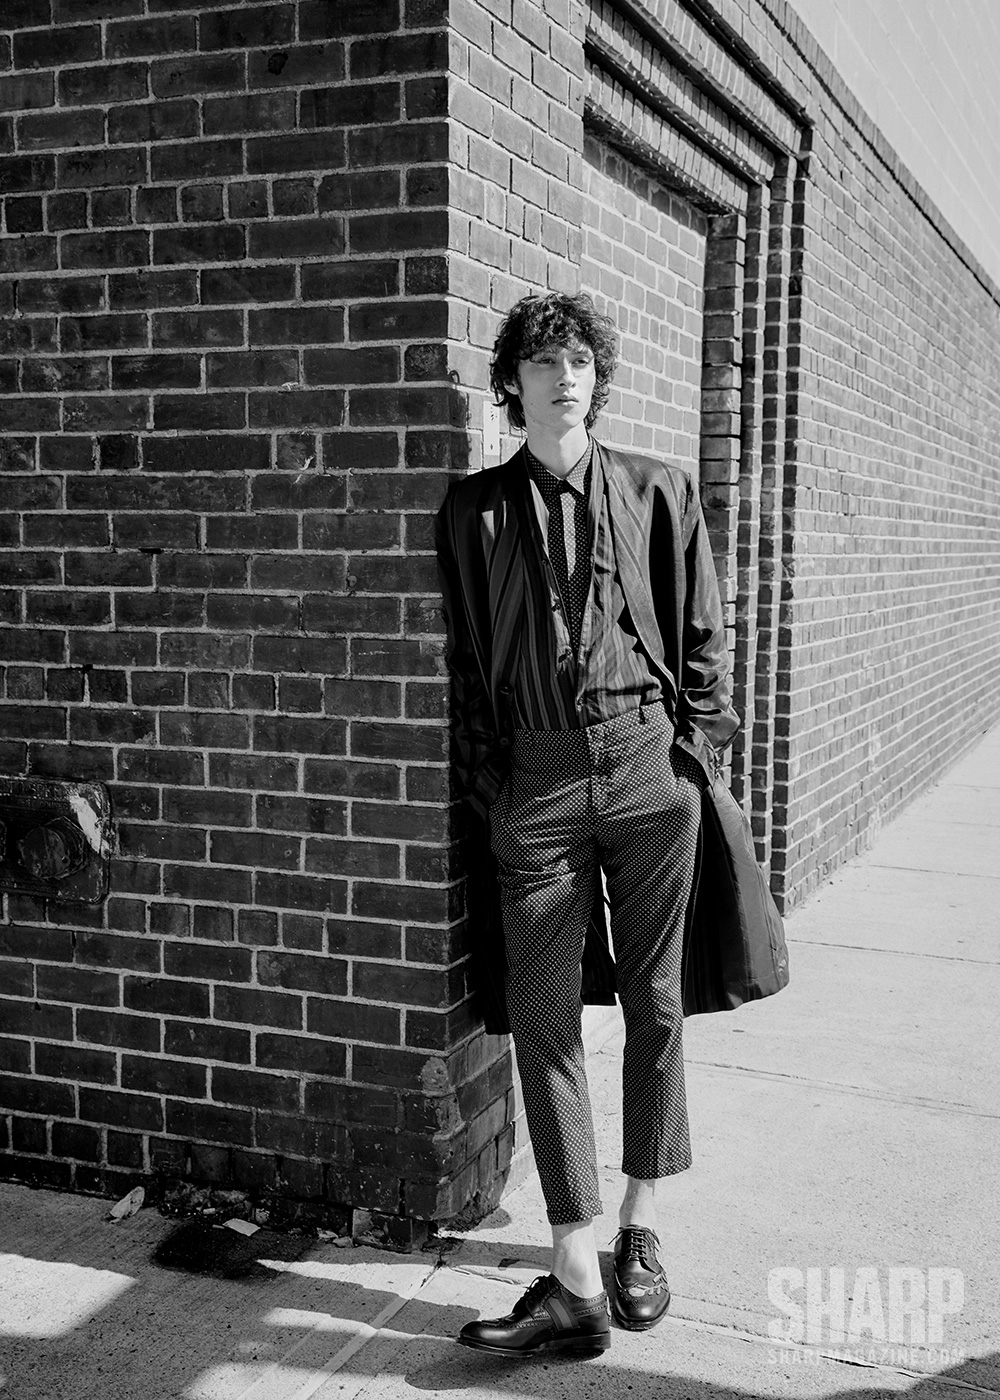 COTTON COAT (PRICE UPON REQUEST), COTTON SHIRT (PRICE UPON REQUEST), COTTON SHIRT (PRICE UPON REQUEST), AND COTTON PANTS (PRICE UPON REQUEST) BY THE KOOPLES; LEATHER SHOES ($1,495) BY GUCCI.